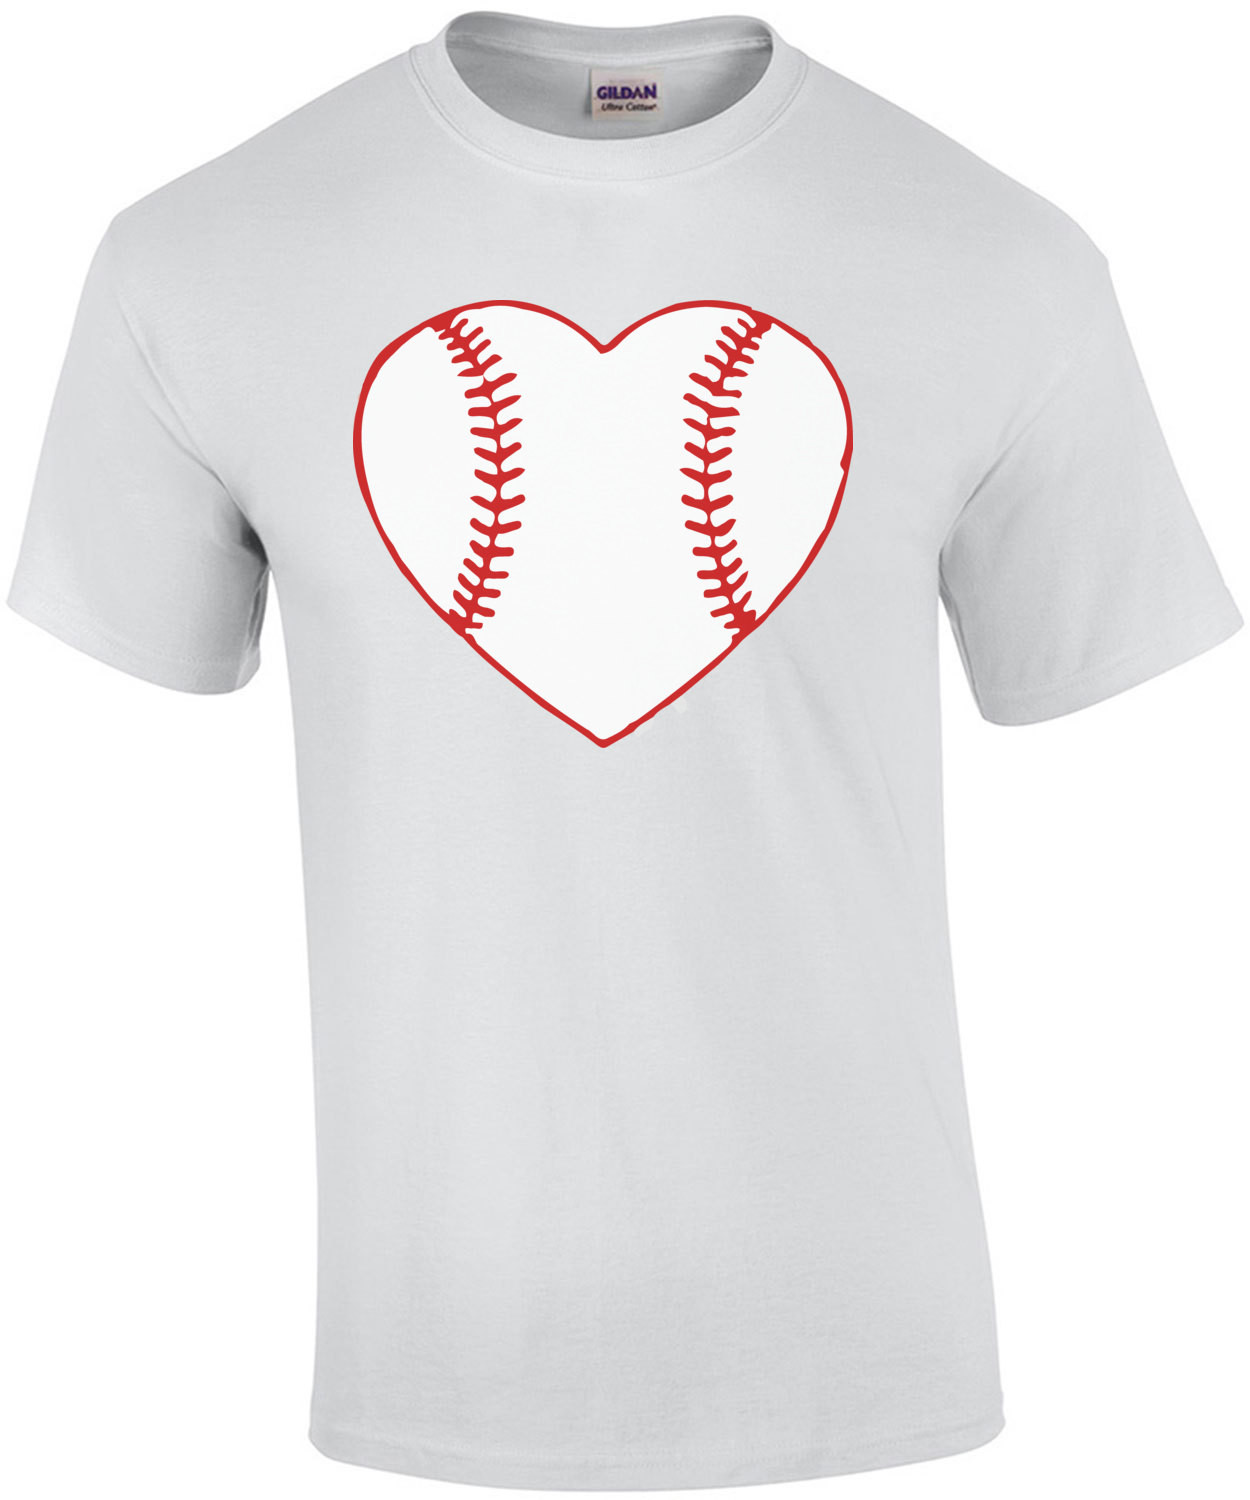 I love baseball - baseball heart t-shirt